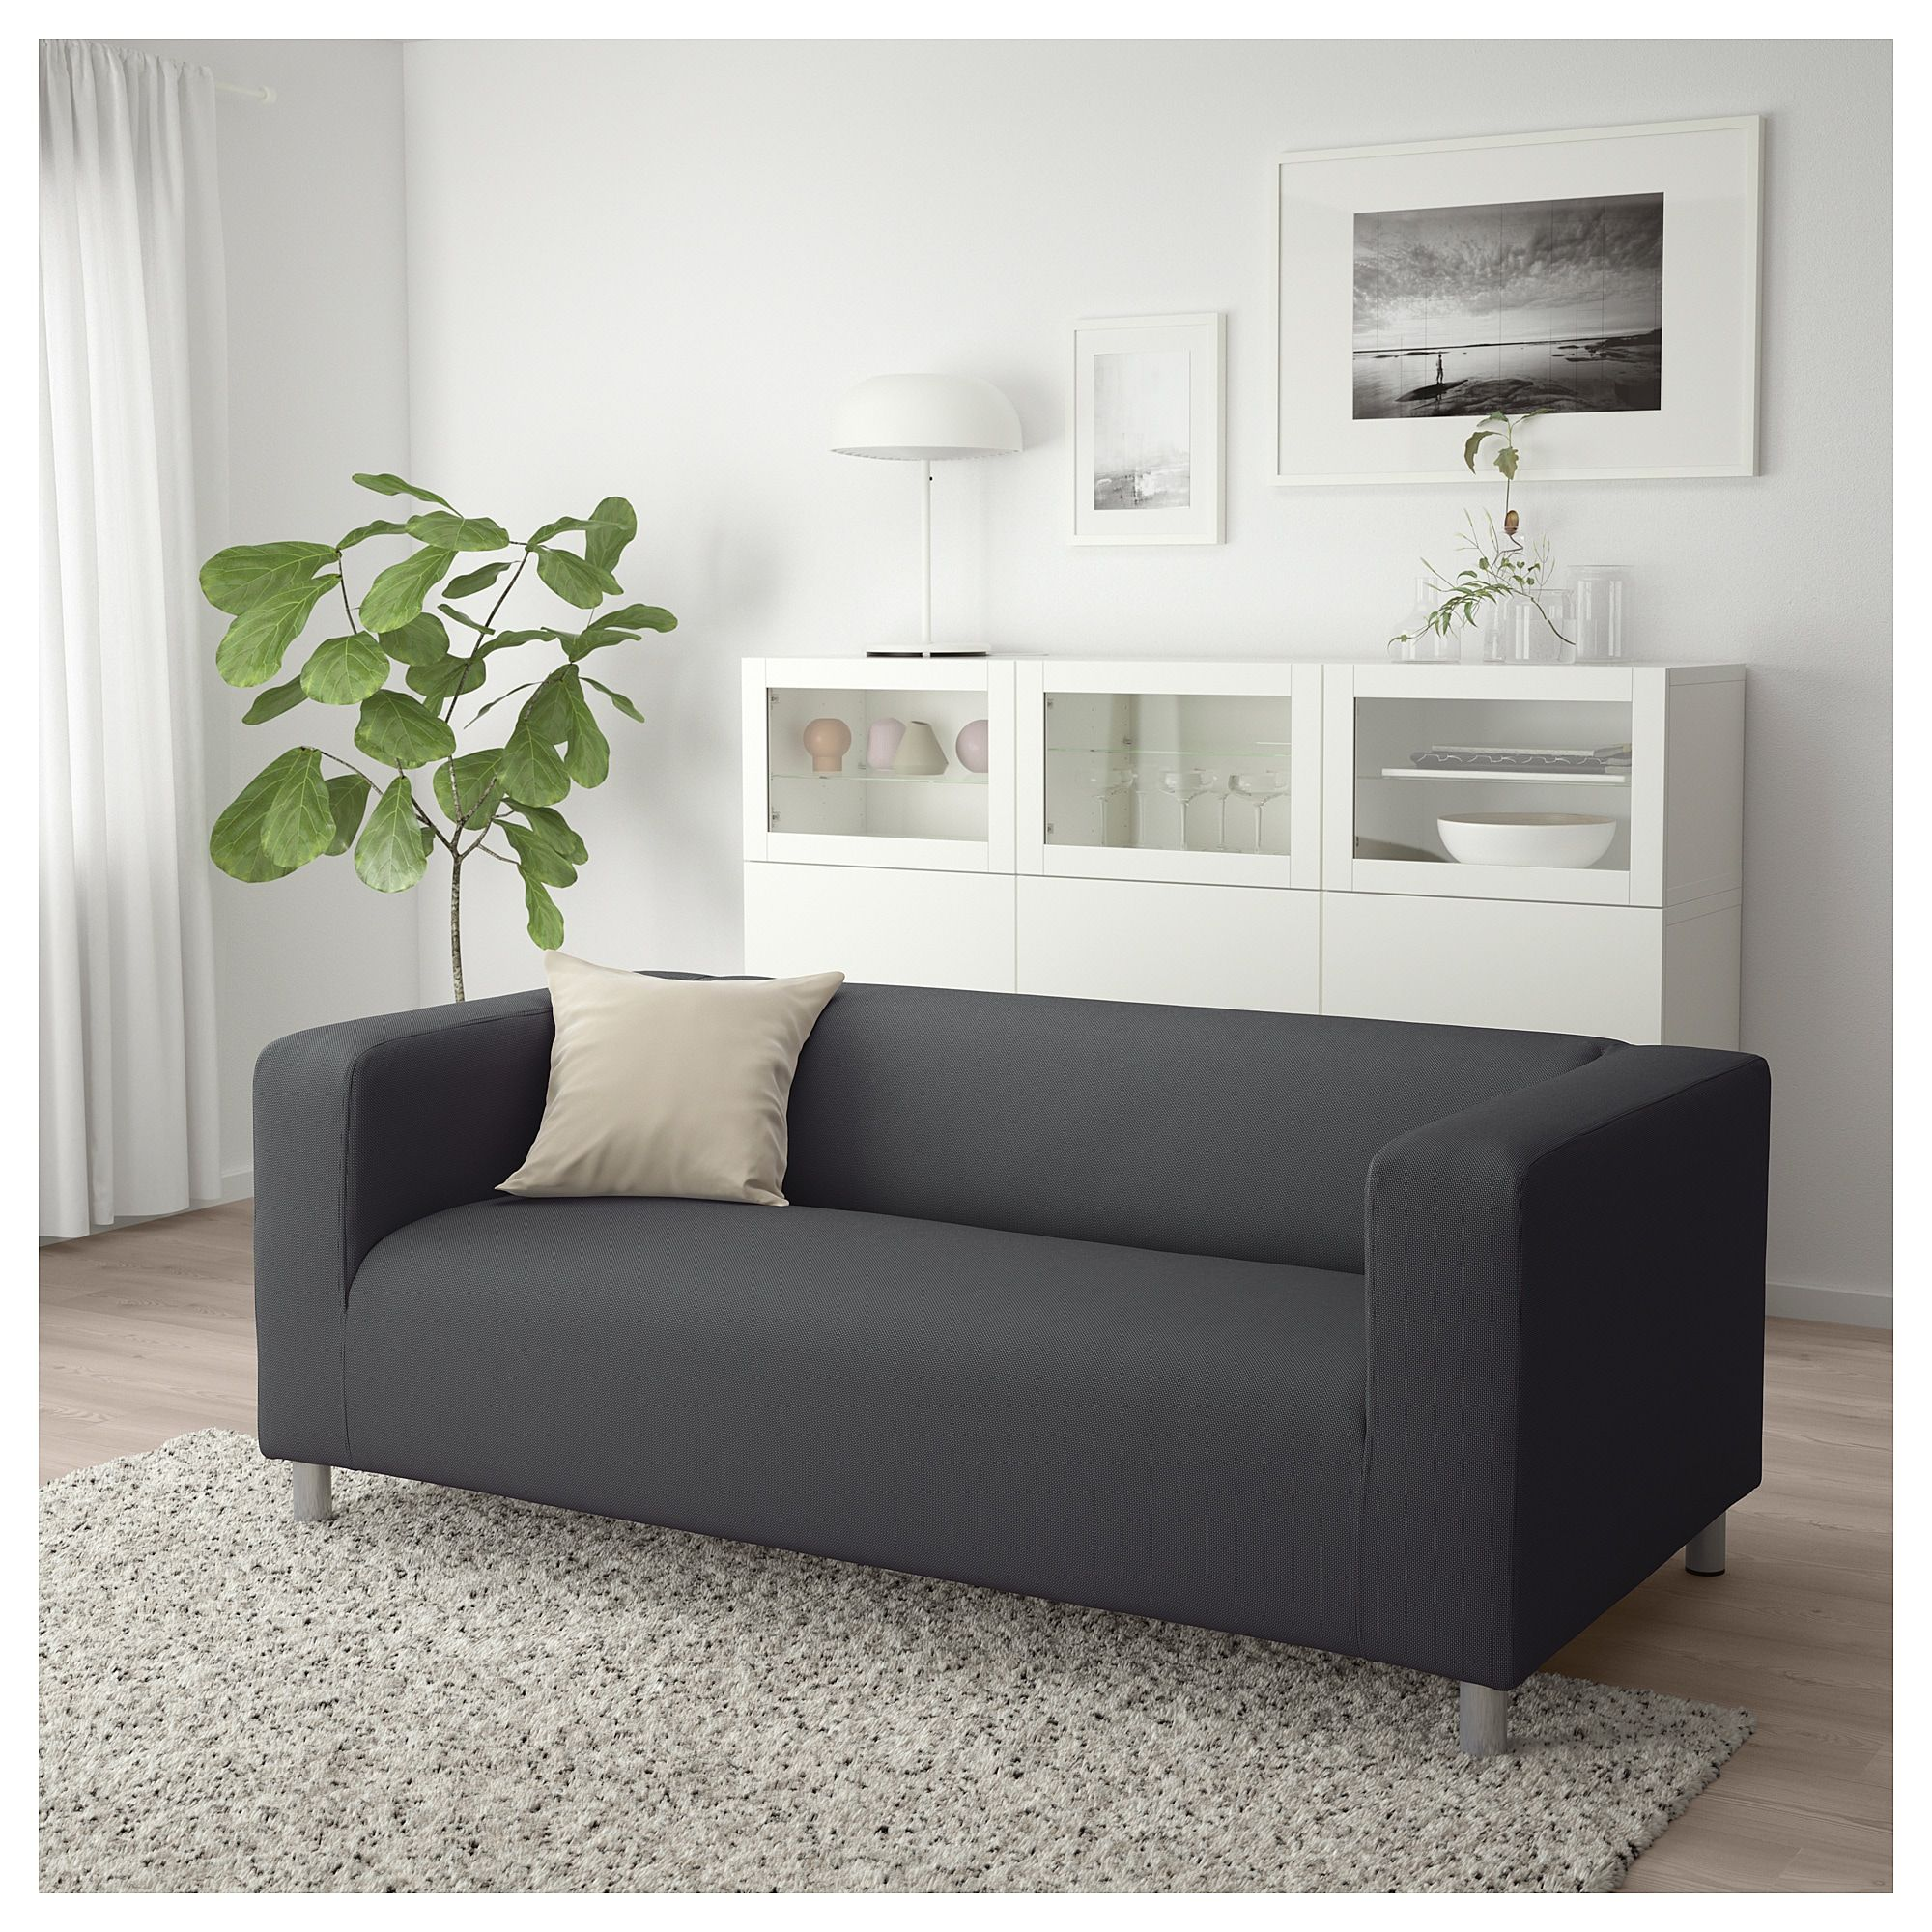 Ikea Klippan Loveseat Vissle Gray Love Seat Furniture Ikea